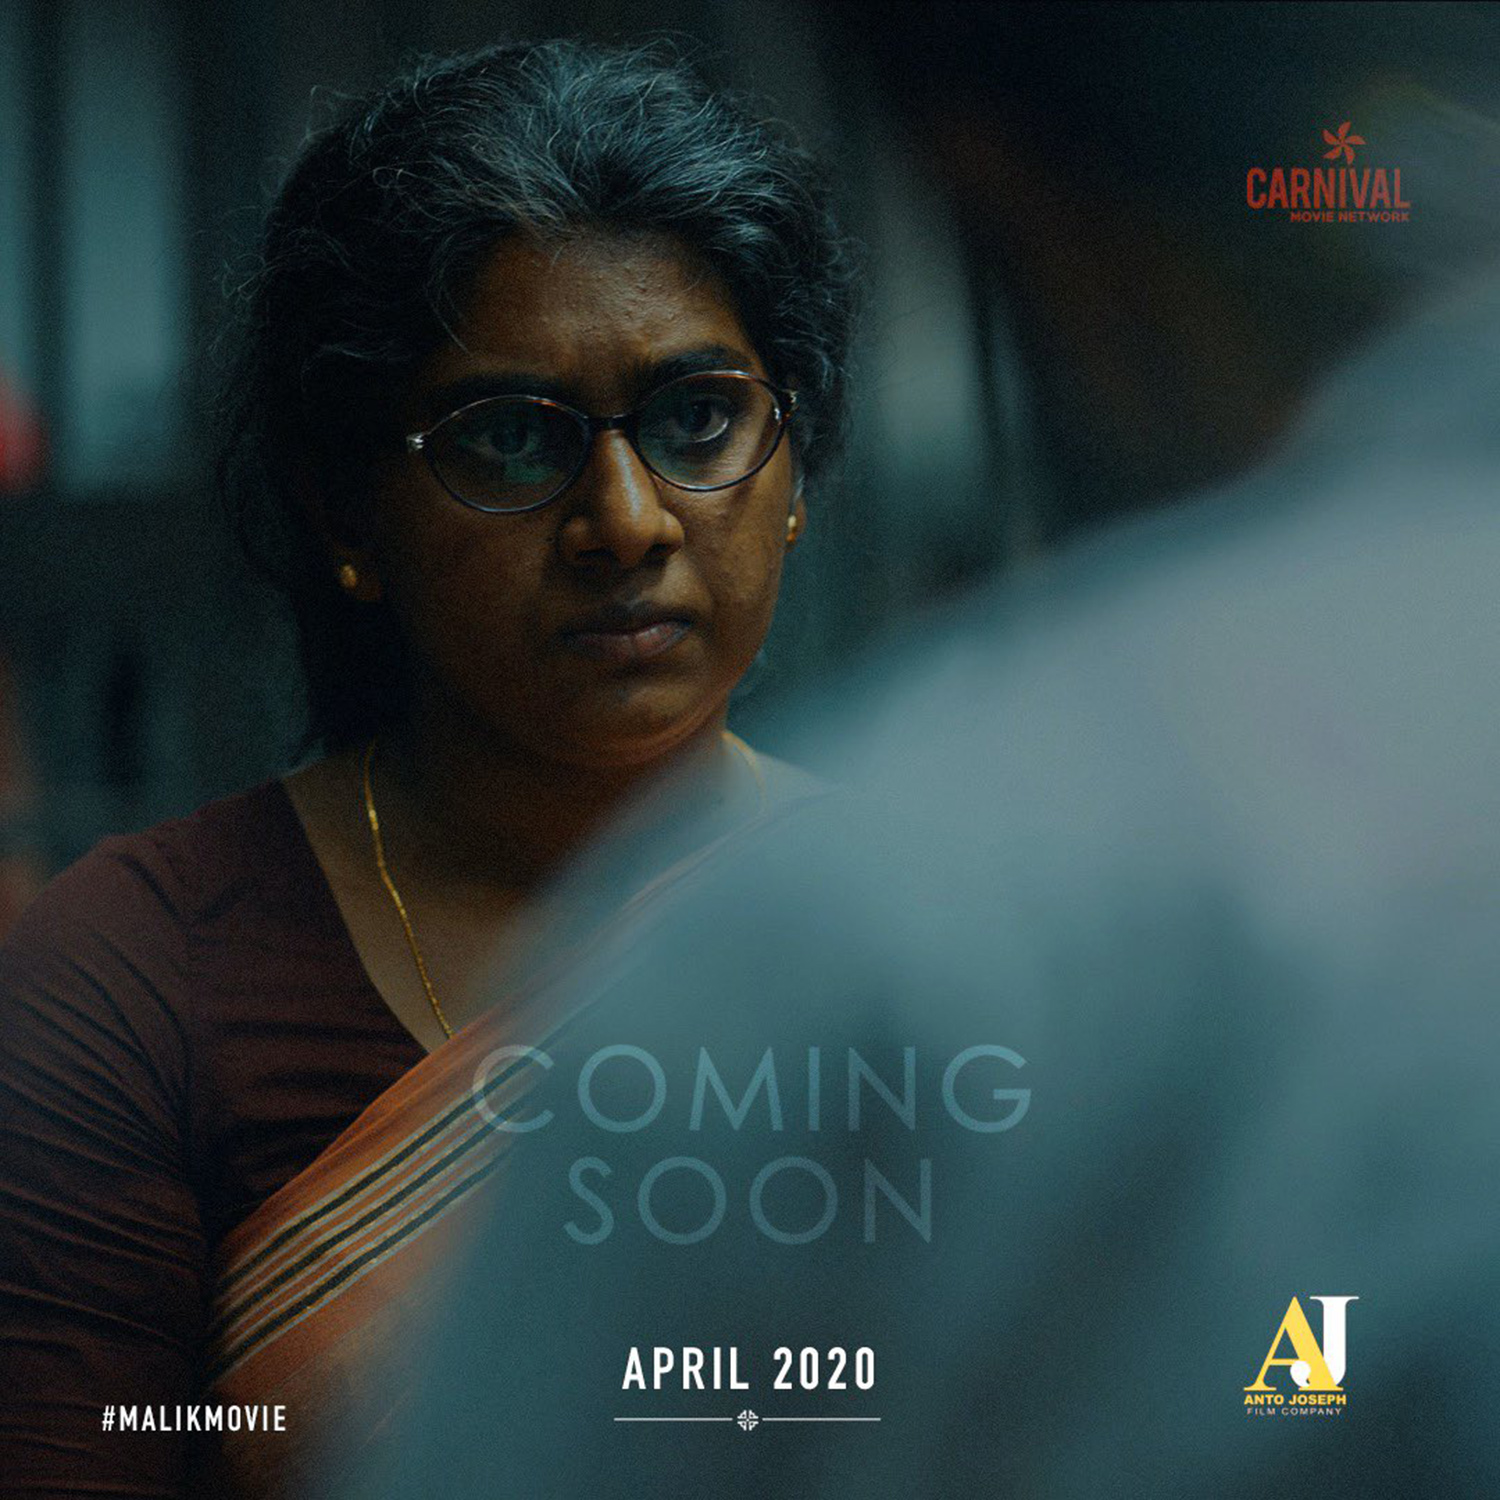 actress nimisha sajayan,nimisha sajayan in malik,malik movie latest news,fahadh faasil,fahadh faasil new film,malayalam actress news,mollywood celebrities latest news,latest malayalam cinema news,nimisha sajayan malik character poster,cinema news malayalam